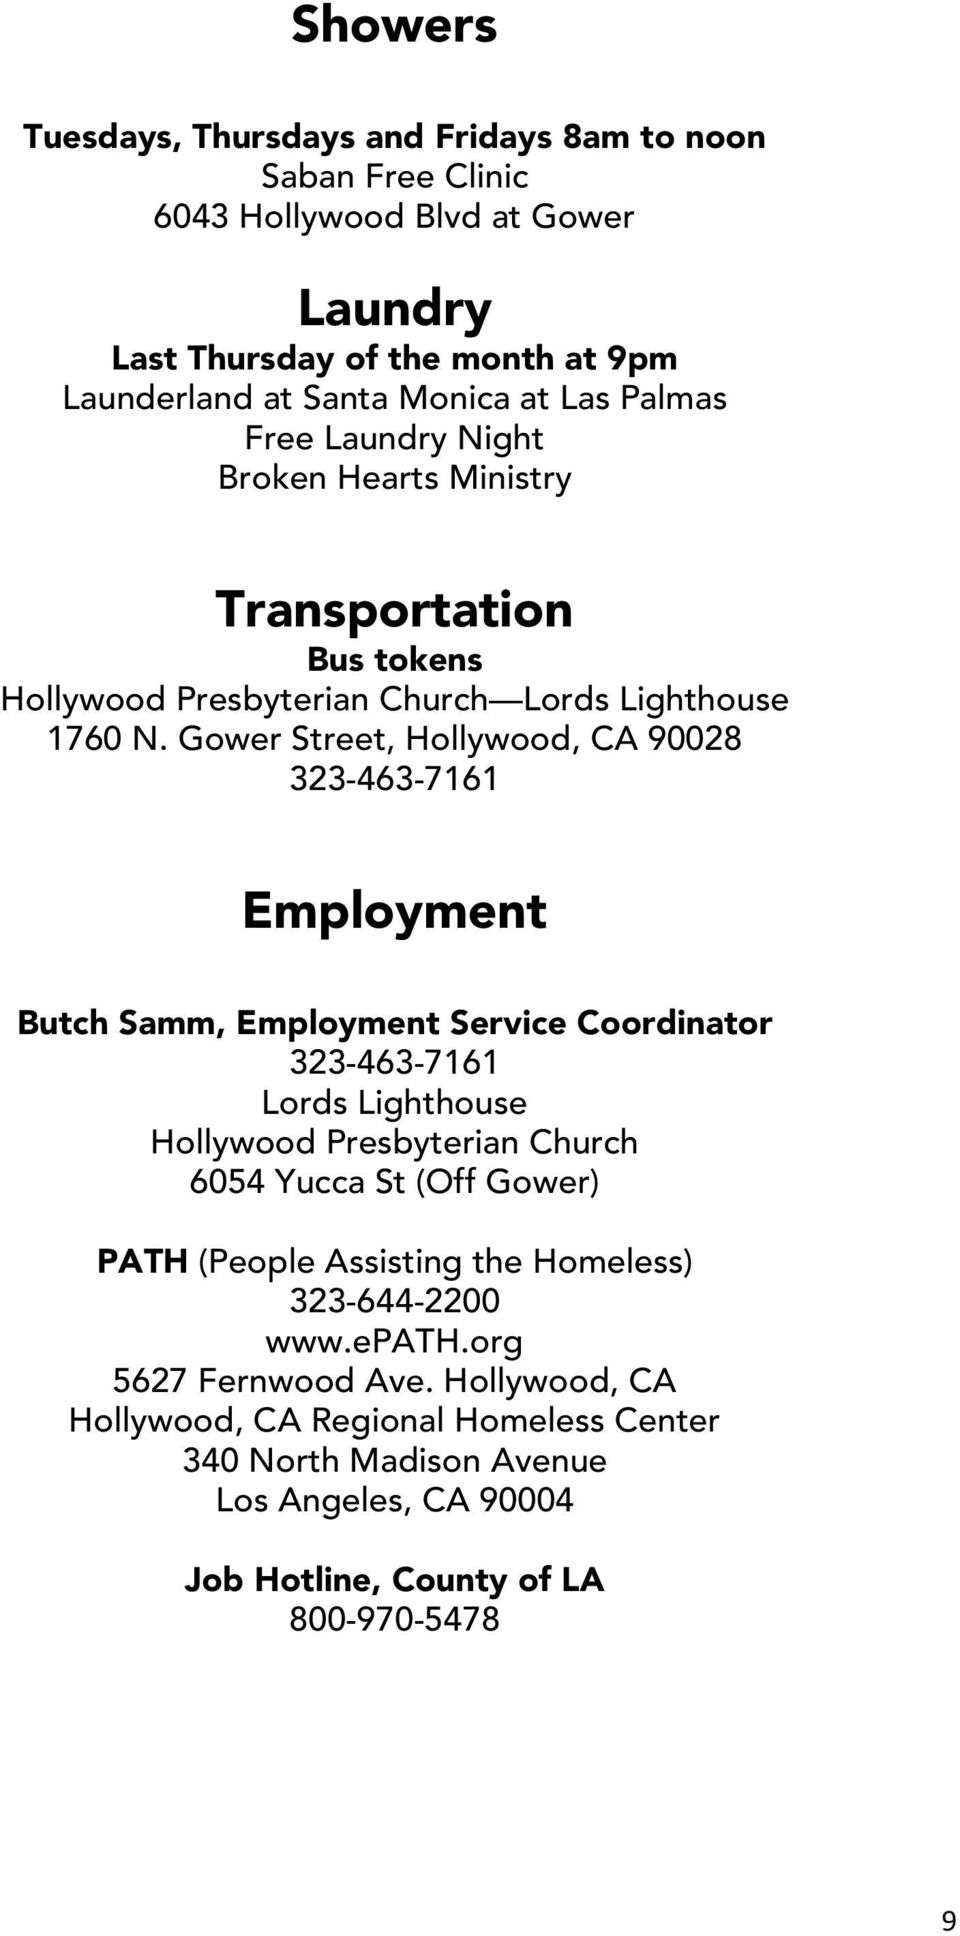 Gower Street, Hollywood, CA 90028 323-463-7161 Employment Butch Samm, Employment Service Coordinator 323-463-7161 Lords Lighthouse Hollywood Presbyterian Church 6054 Yucca St